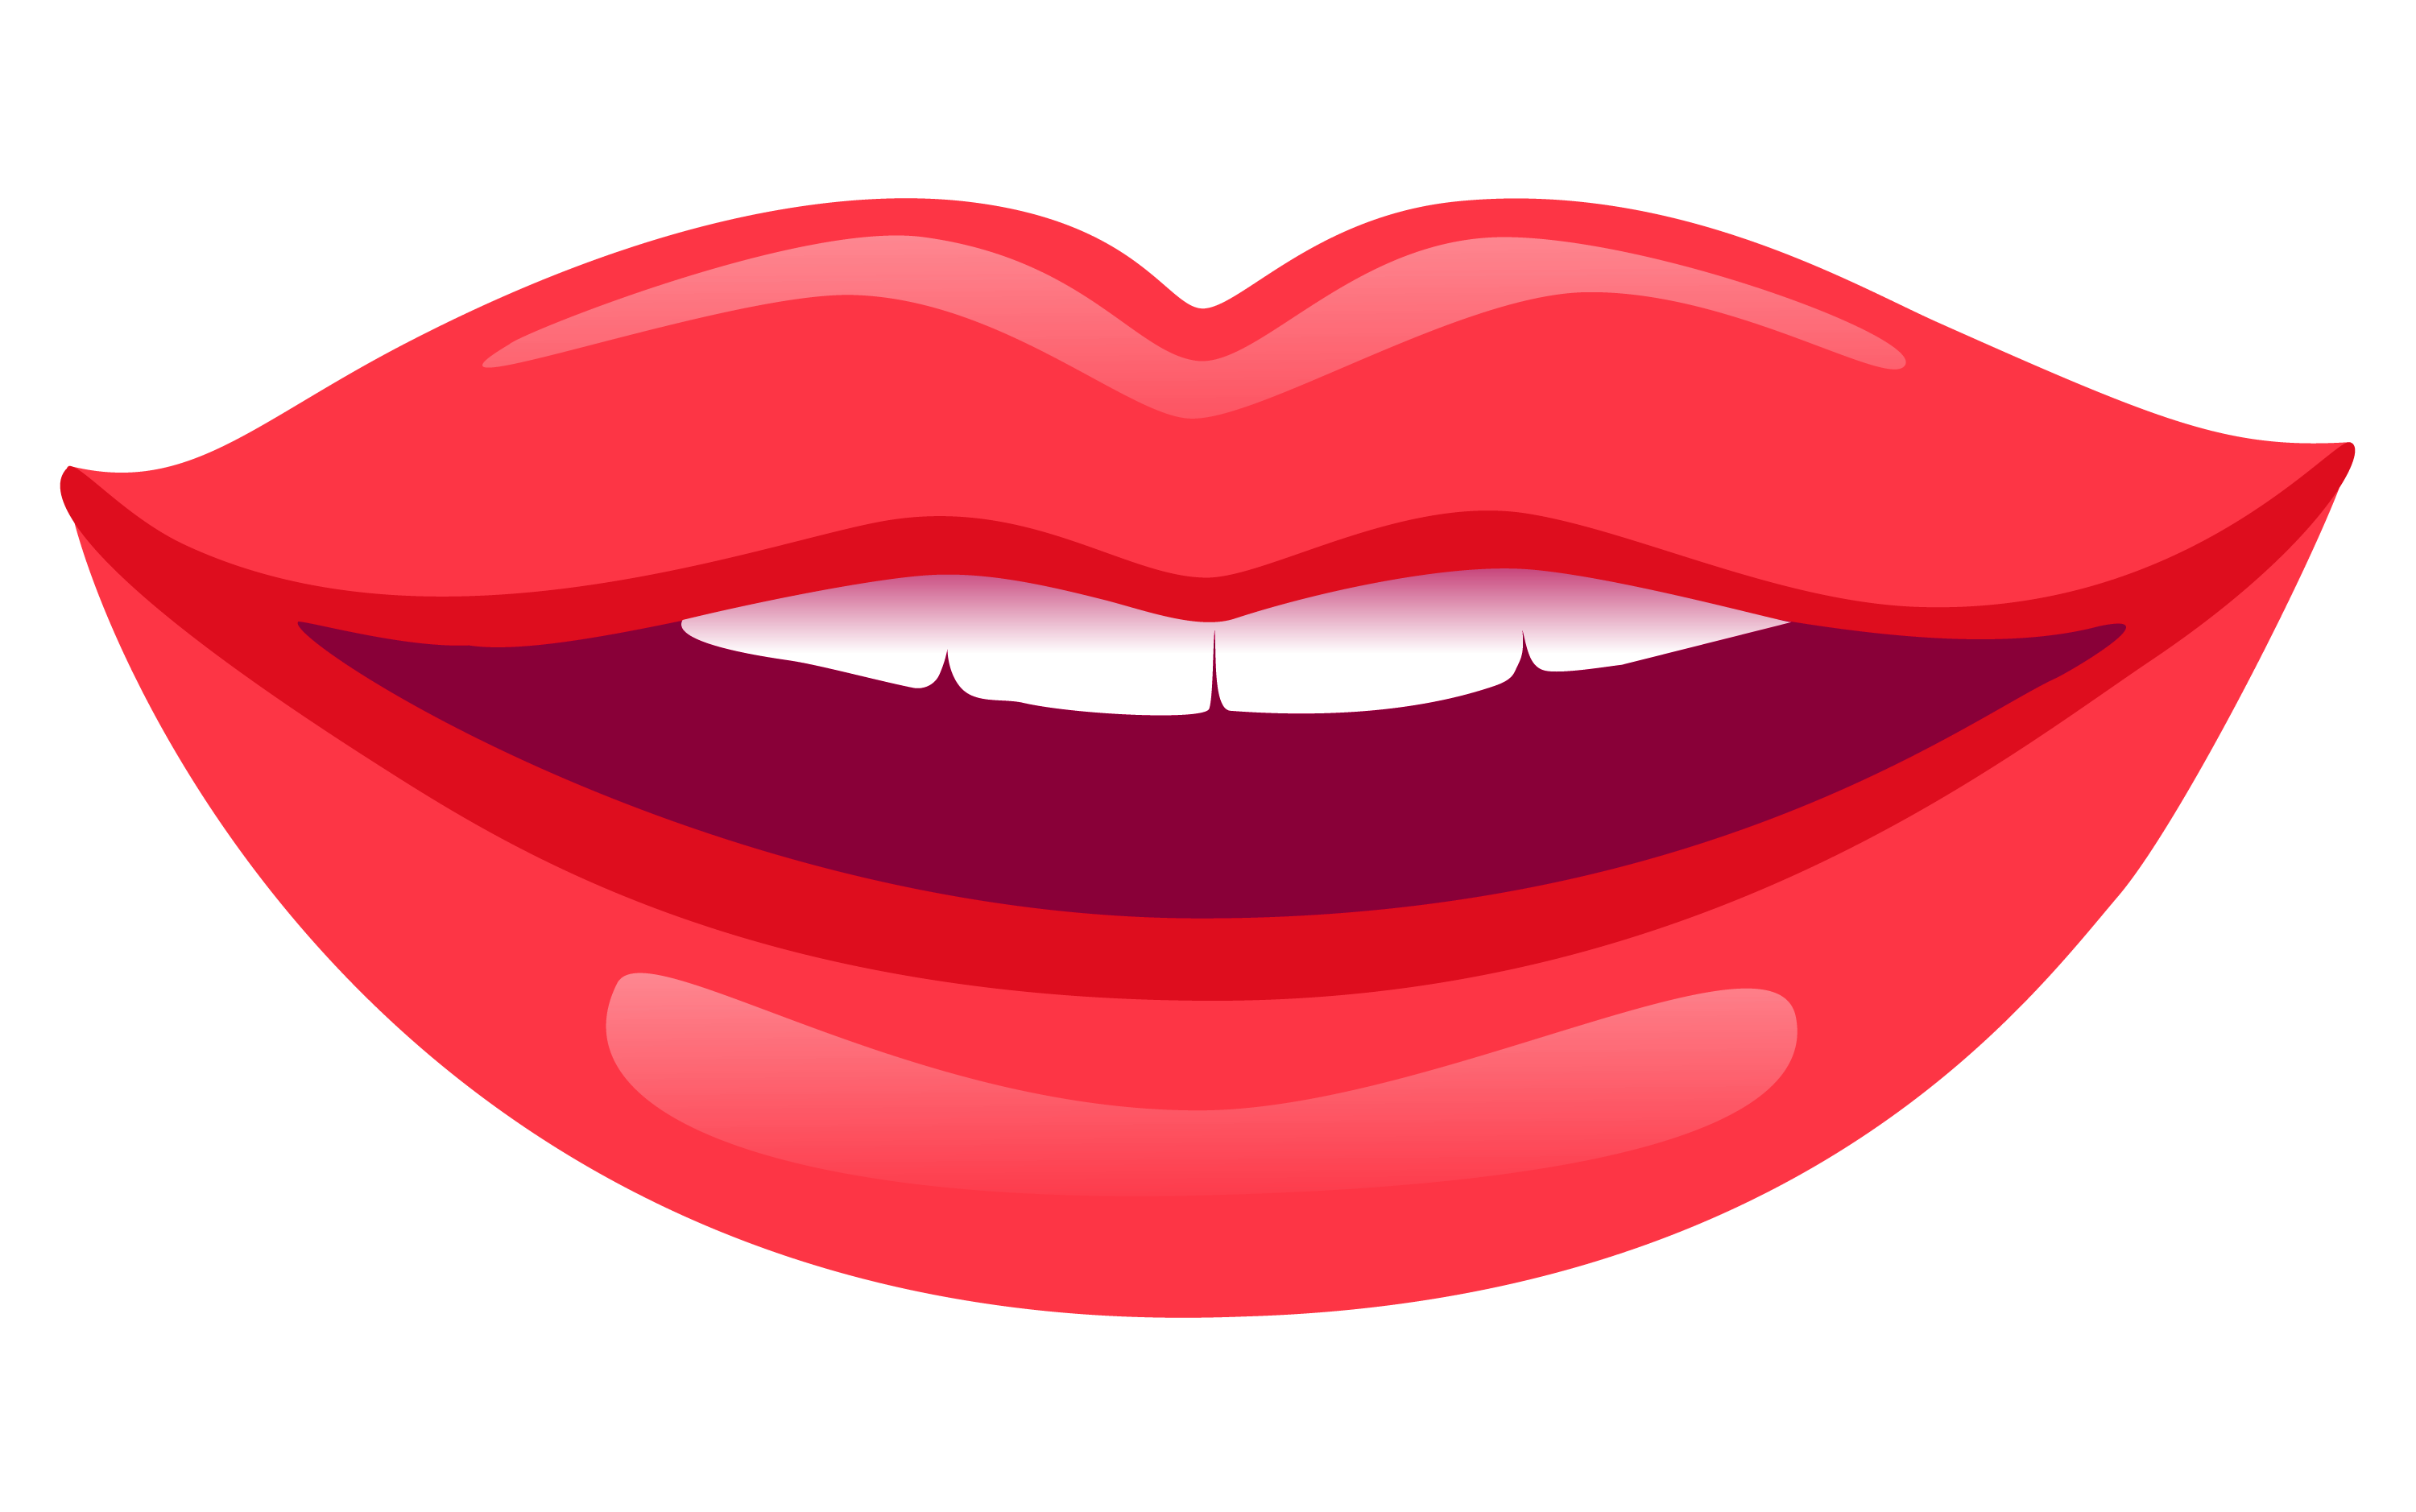 Lips PNG - 23196